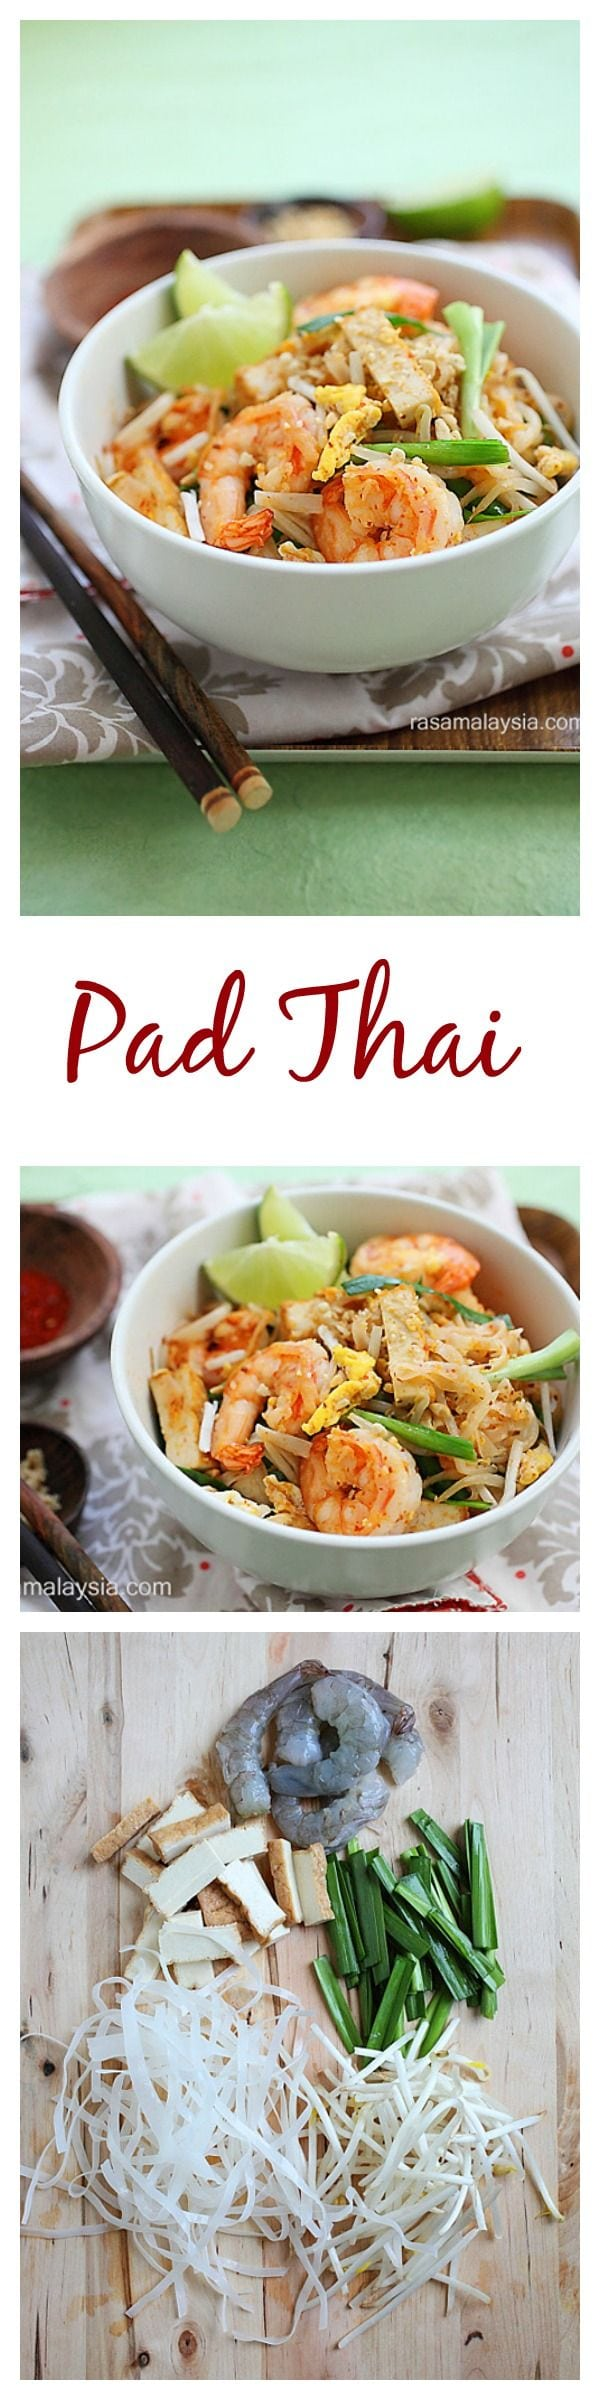 Pad Thai - an easy stir-fried noodles dish with rice stick noodles, shrimp, fried tofu, peanuts in Pad Thai sauce made of fish sauce, vinegar, sugar and chili powder. This is a traditional and authentic homemade recipe | rasamalaysia.com